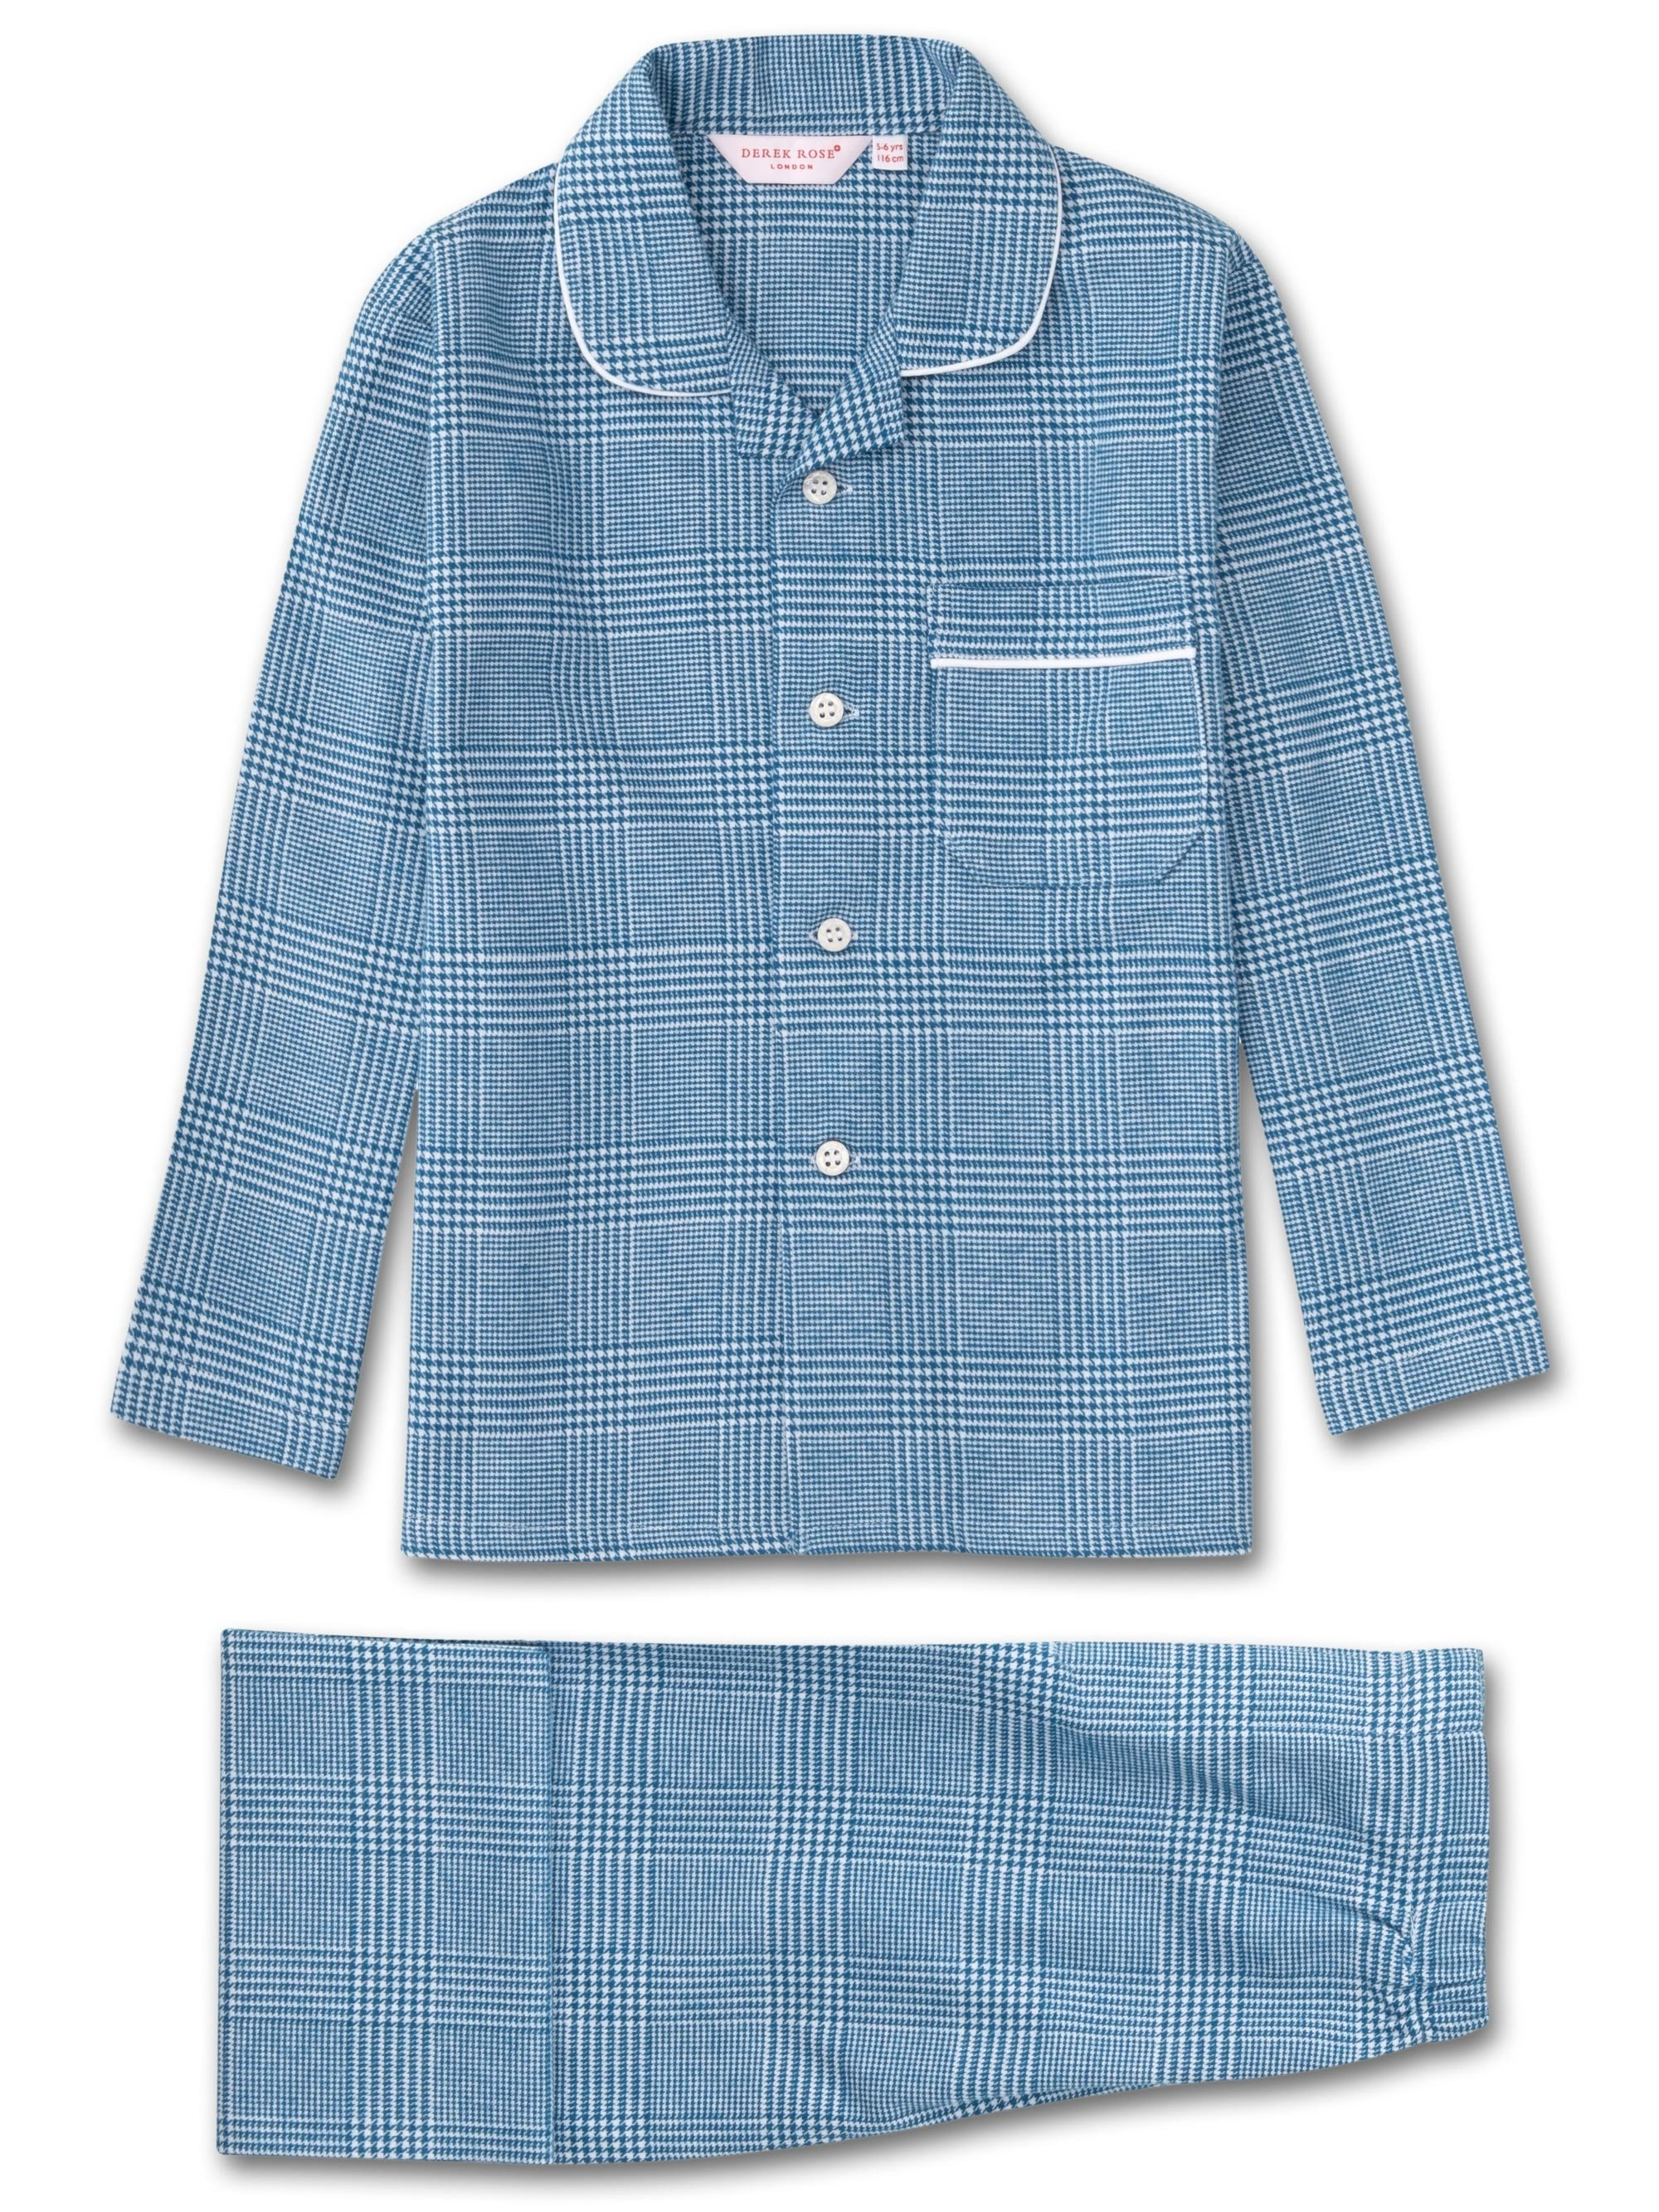 Kids' Pyjamas Kelburn 6 Brushed Cotton Check Ocean